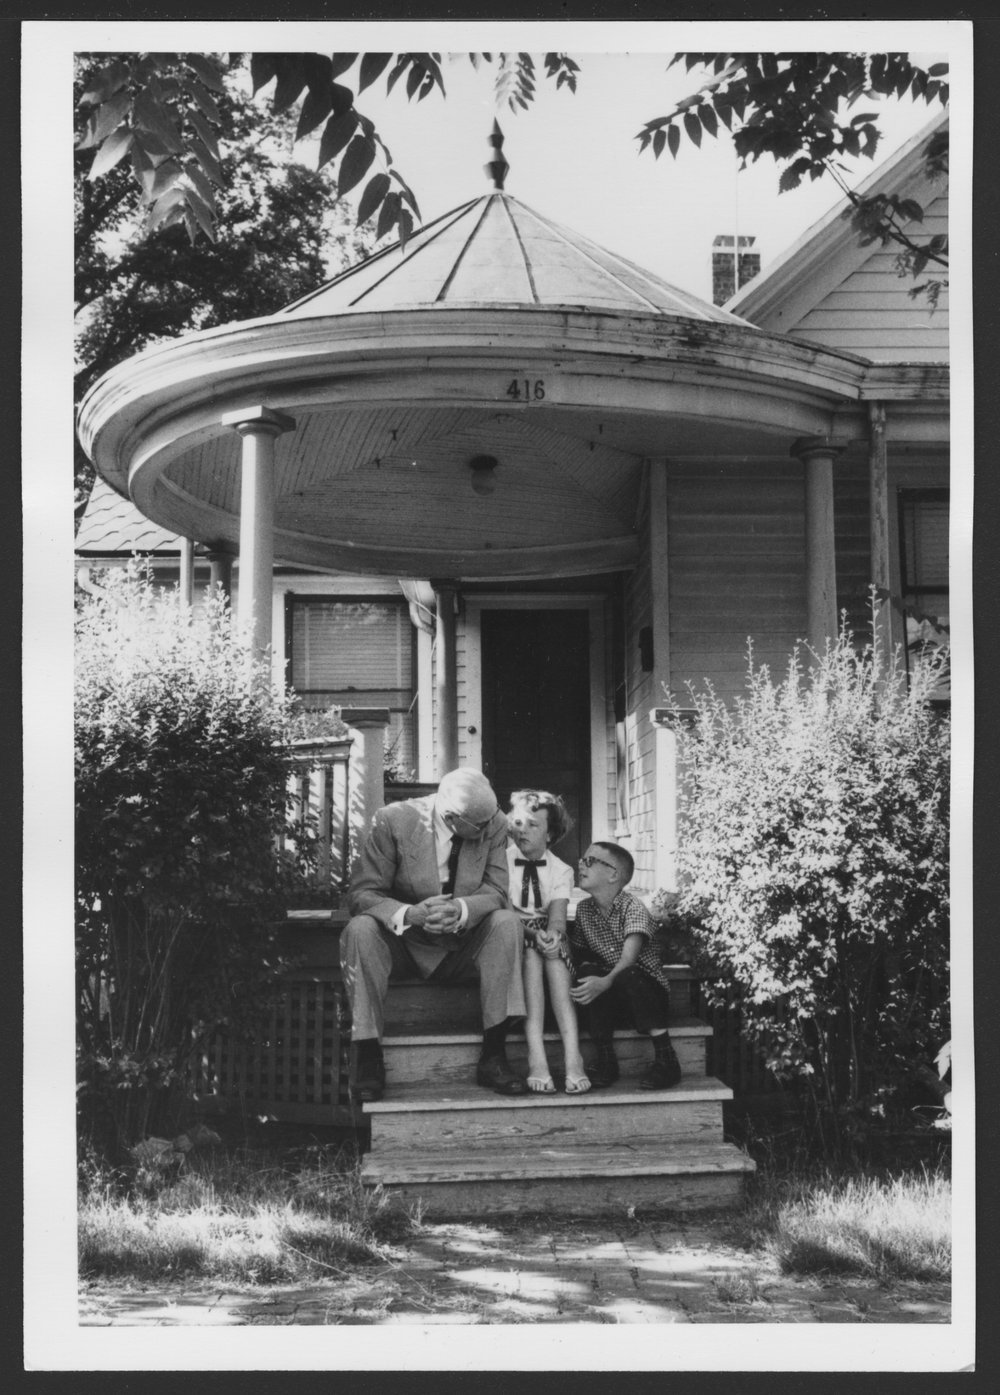 Karl A. Menninger, M.D. - Dr. Karl with his daugher Rosemary and grandson Karl II in front of the house where Dr. Karl was born, 1270 Topeka Blvd.